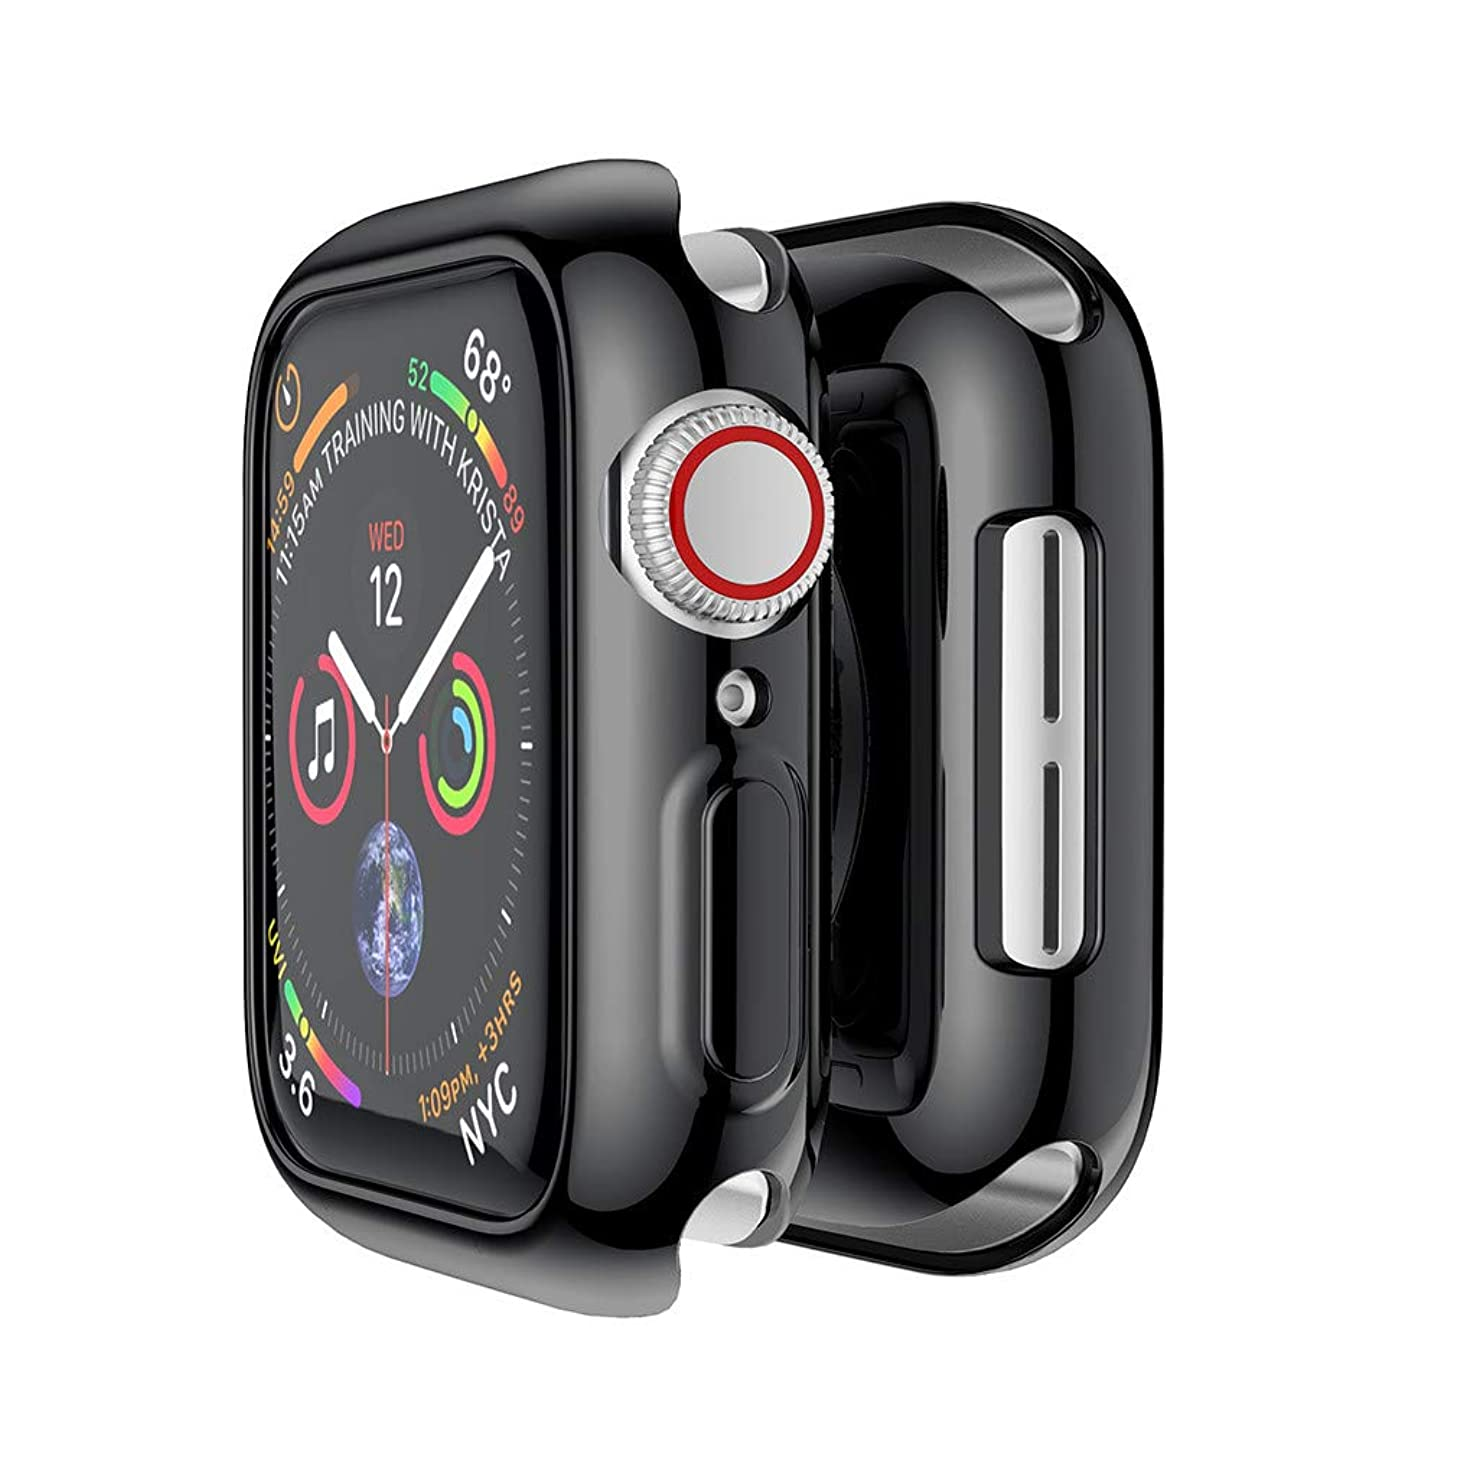 Cywulin Compatible with Apple Watch Case 40mm 44mm, 2018 New iWatch Series 4 Ultra Thin Rugged Armor TPU Bumper Protective All-Around Shock Proof Flexible Protector Replacement Cover (44mm, Black)